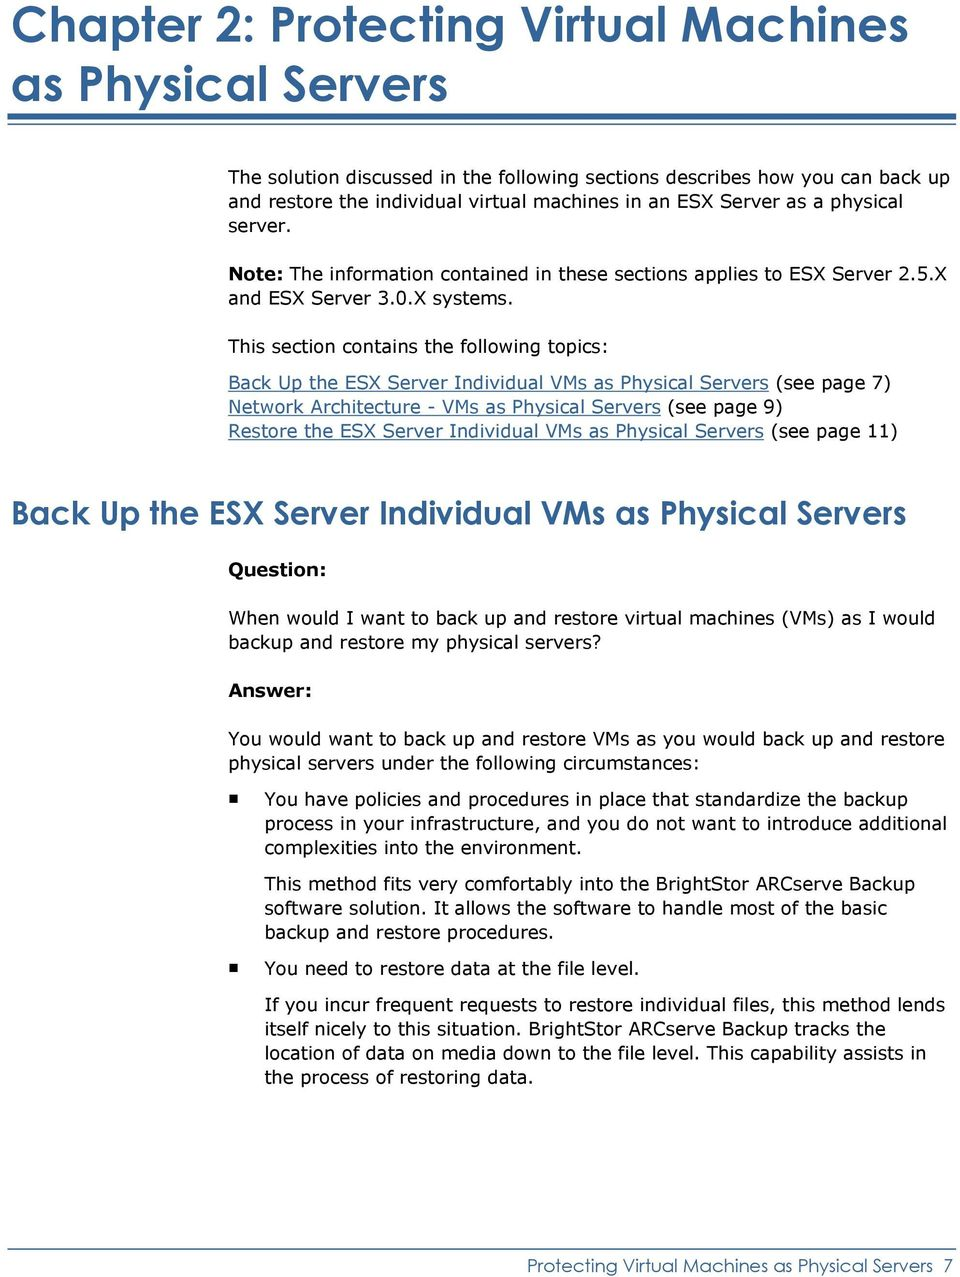 This section contains the following topics: Back Up the ESX Server Individual VMs as Physical Servers (see page 7) Network Architecture - VMs as Physical Servers (see page 9) Restore the ESX Server